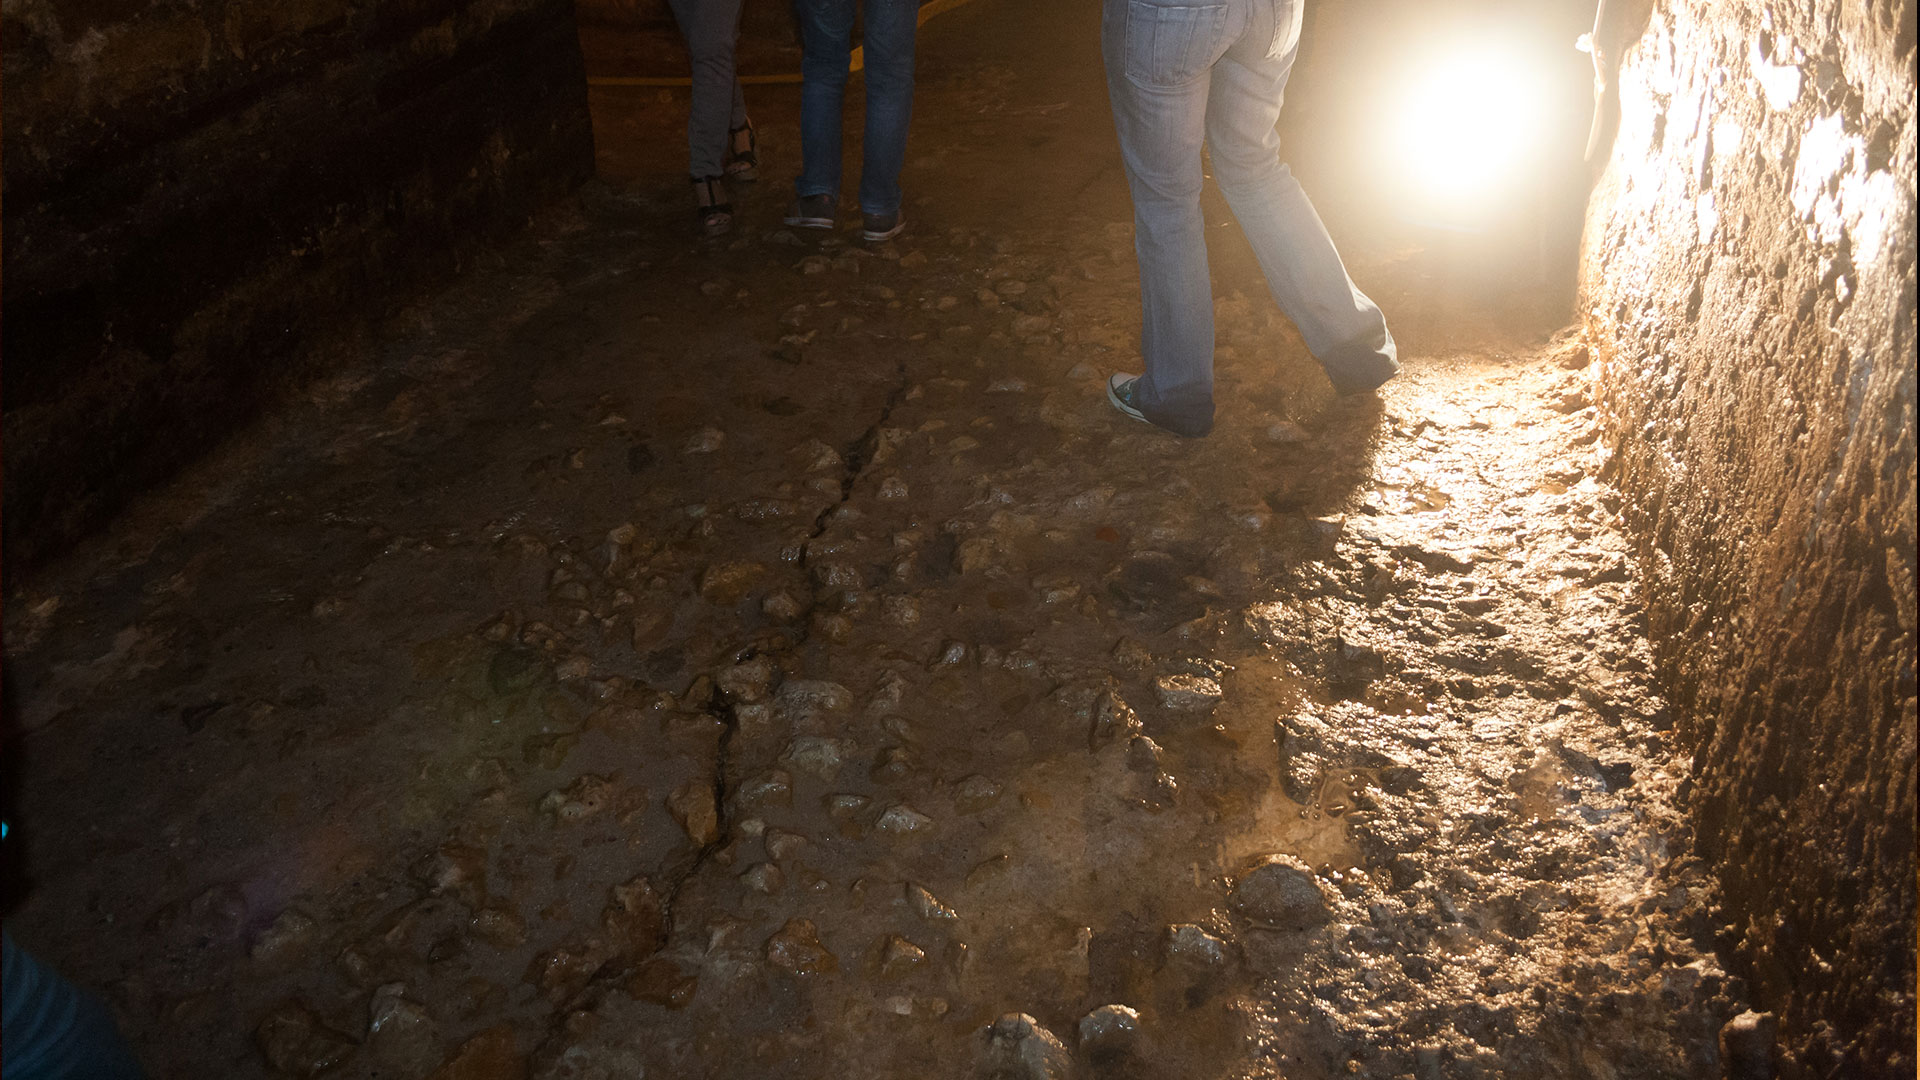 A crack on the ground that dates back to the 1755 Great Earthquake